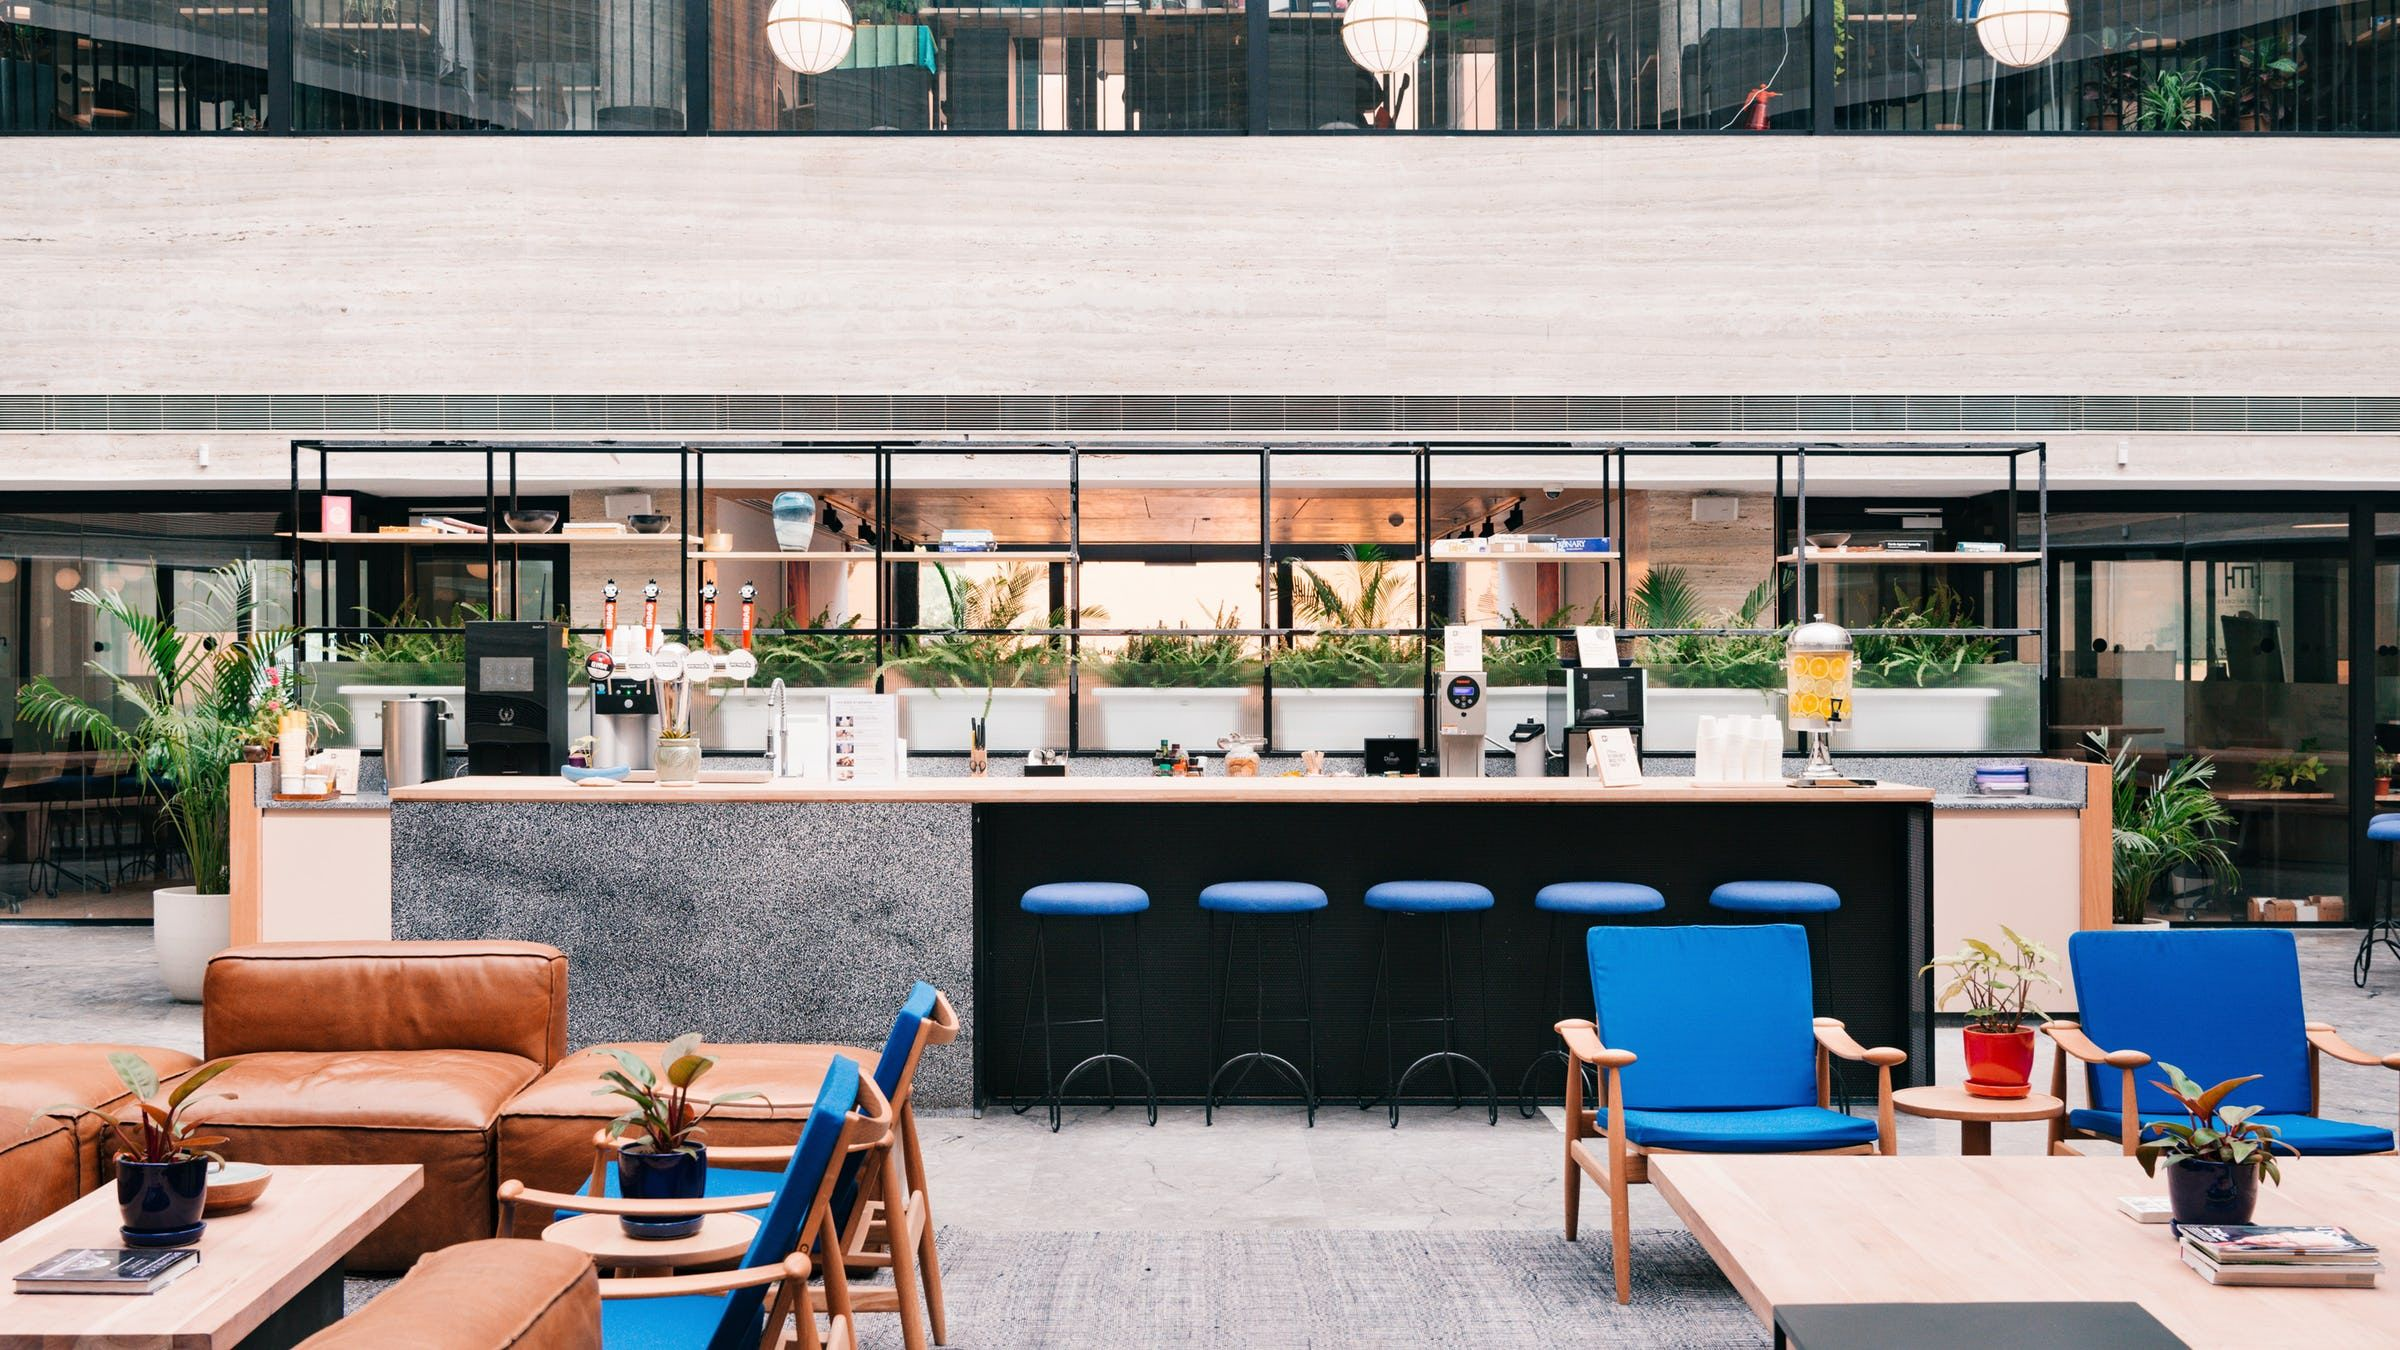 Suthi Building Coworking Office Space Wework Bangkok Coworking Coworking Office Space Office Space